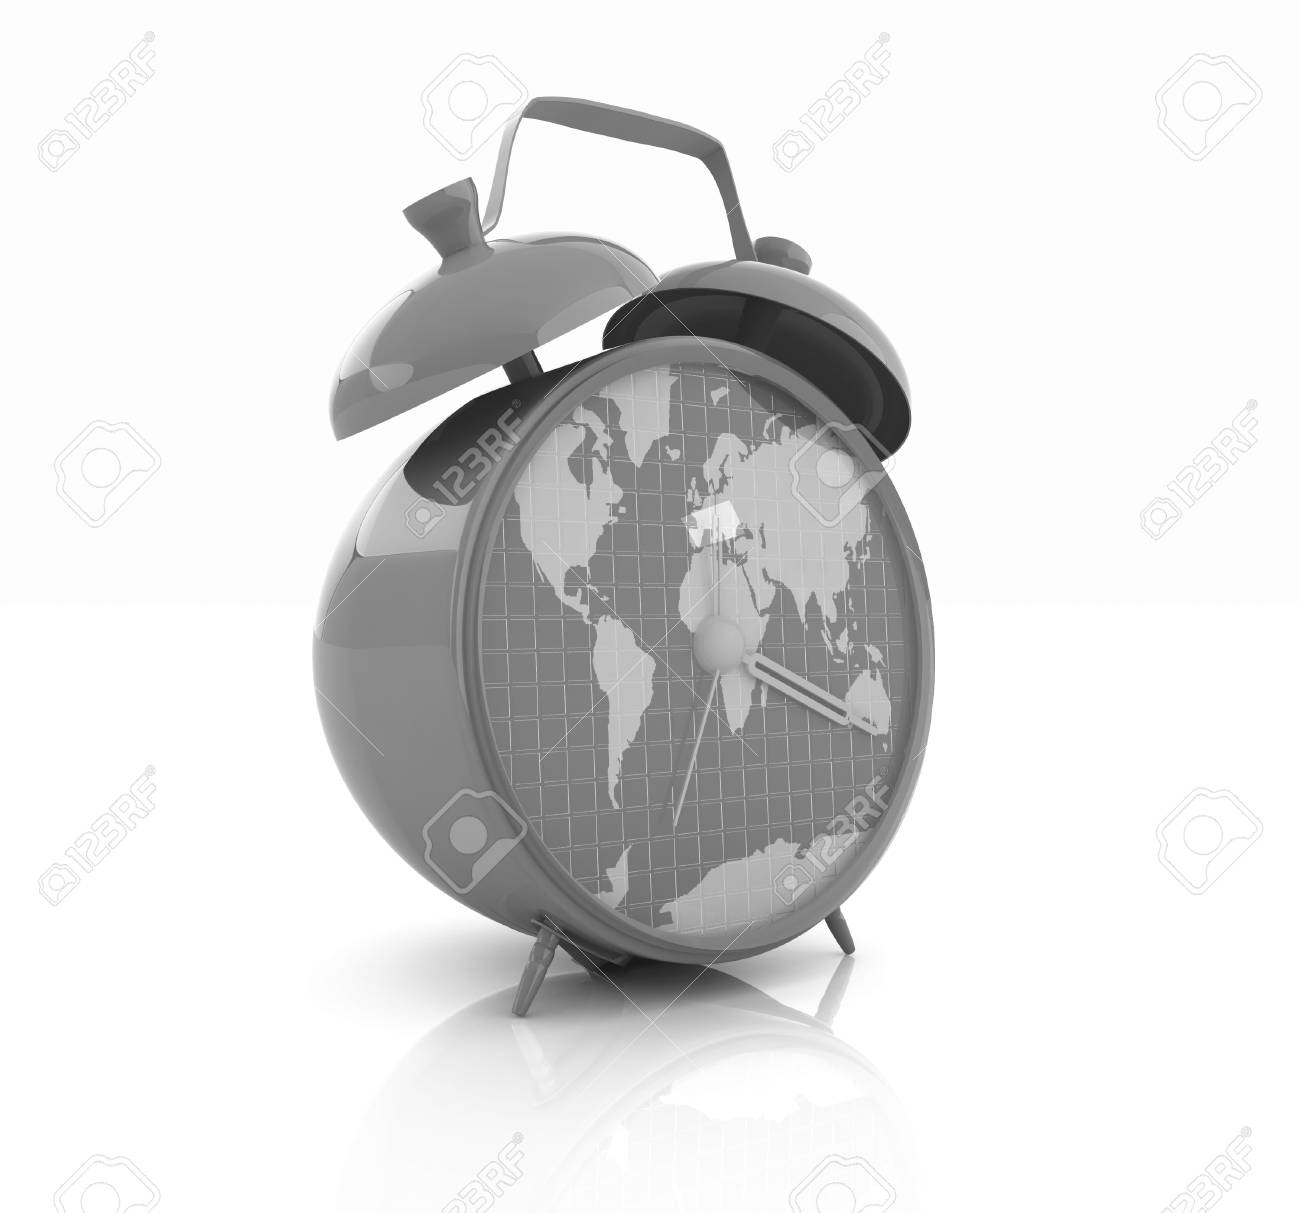 Clock of world map stock photo picture and royalty free image clock of world map stock photo 32134599 gumiabroncs Choice Image